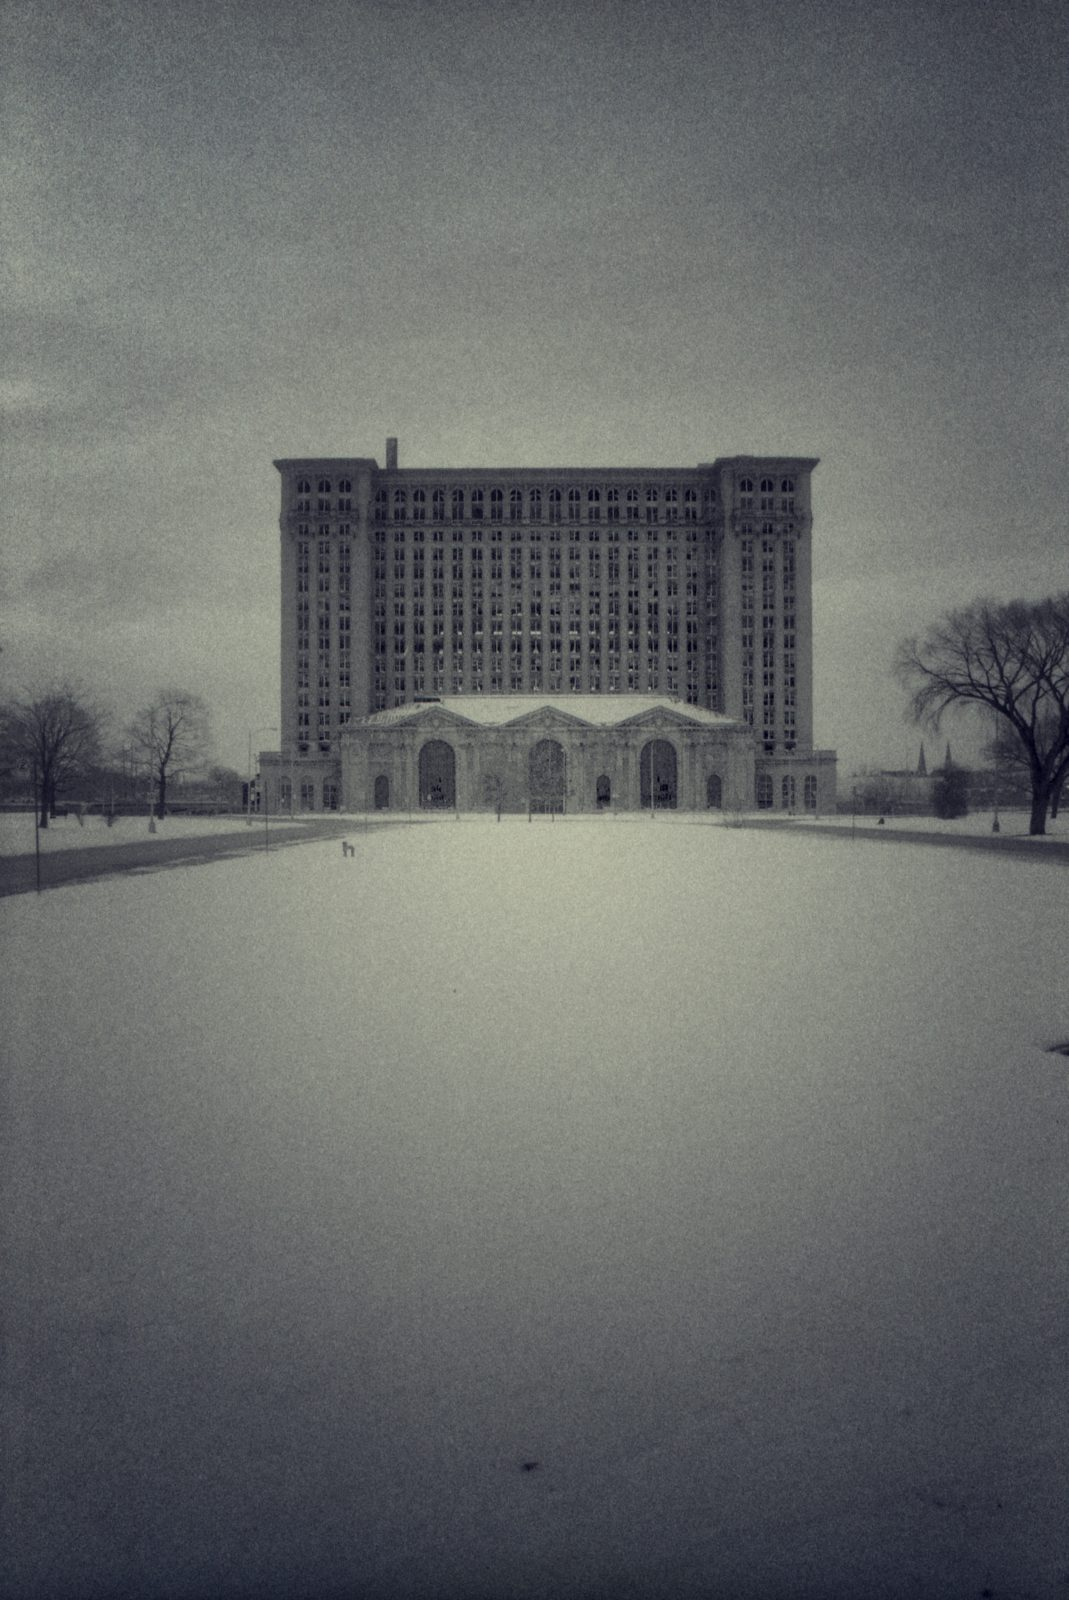 Michigan Central Station, at night, in winter. Detroit, Michigan.